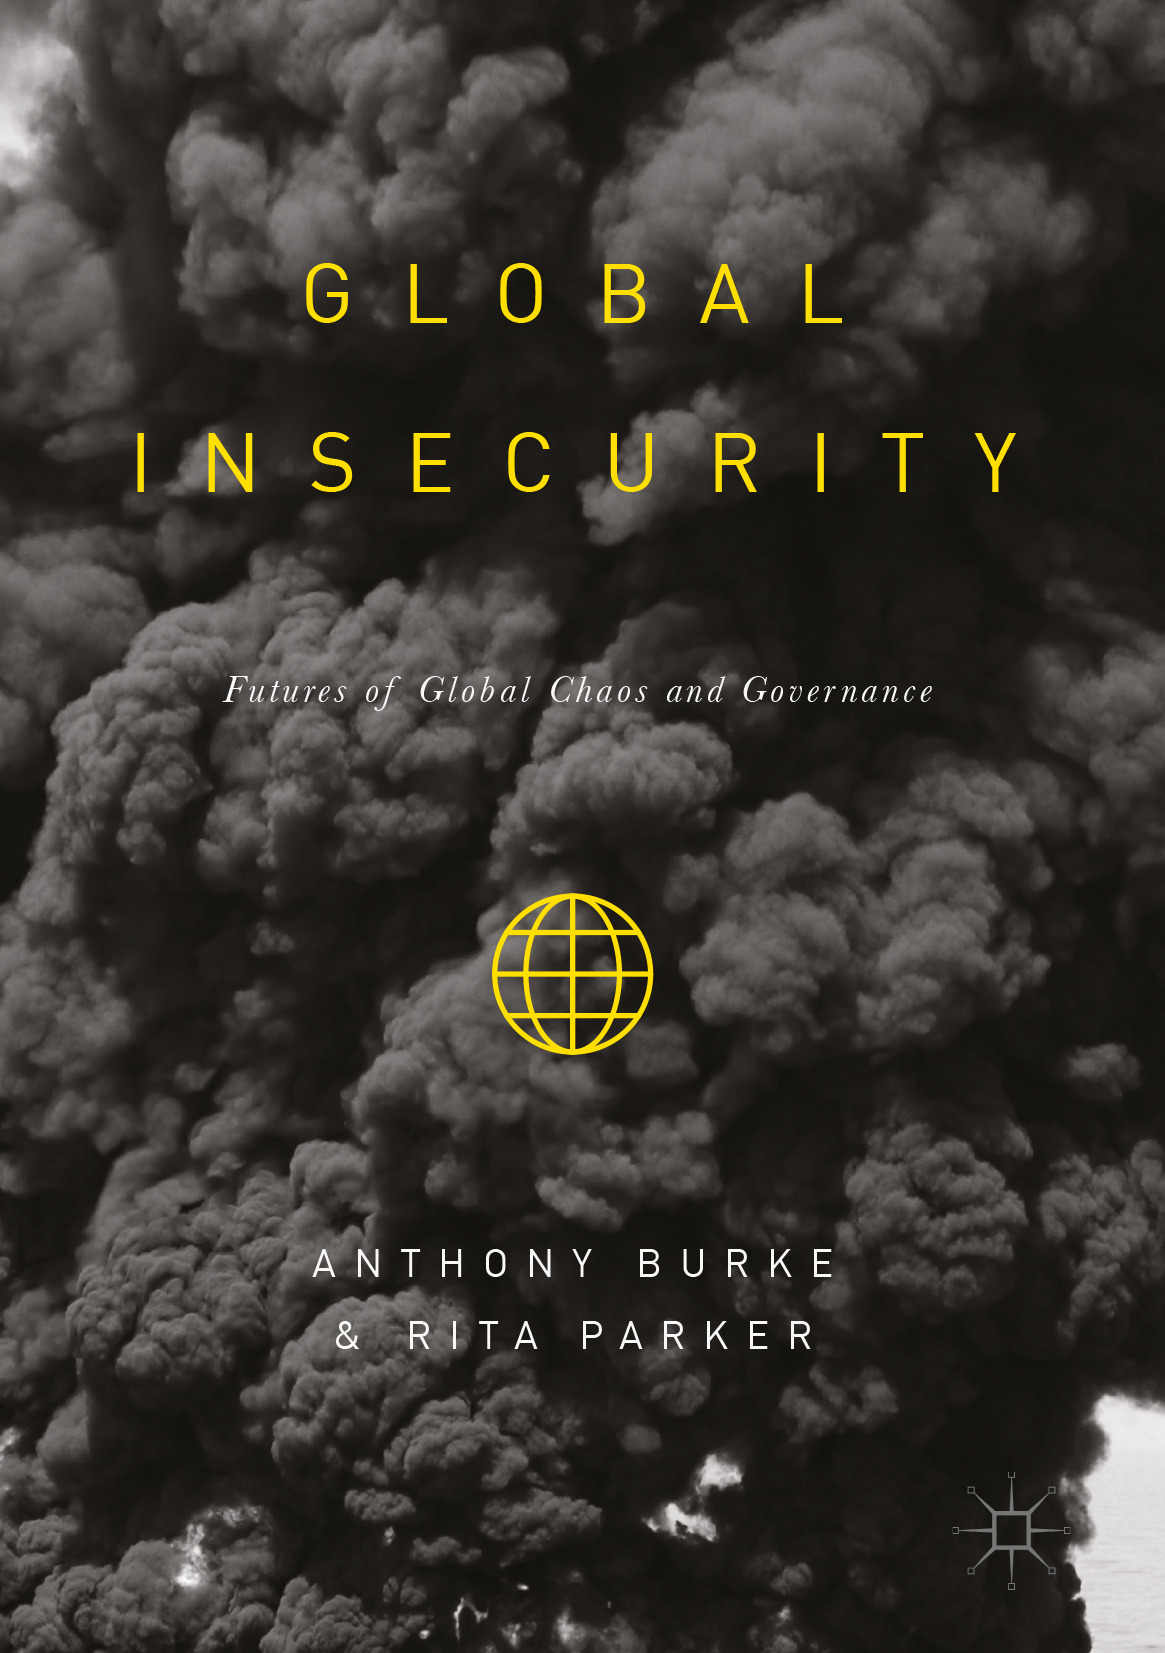 Burke, Anthony - Global Insecurity, ebook